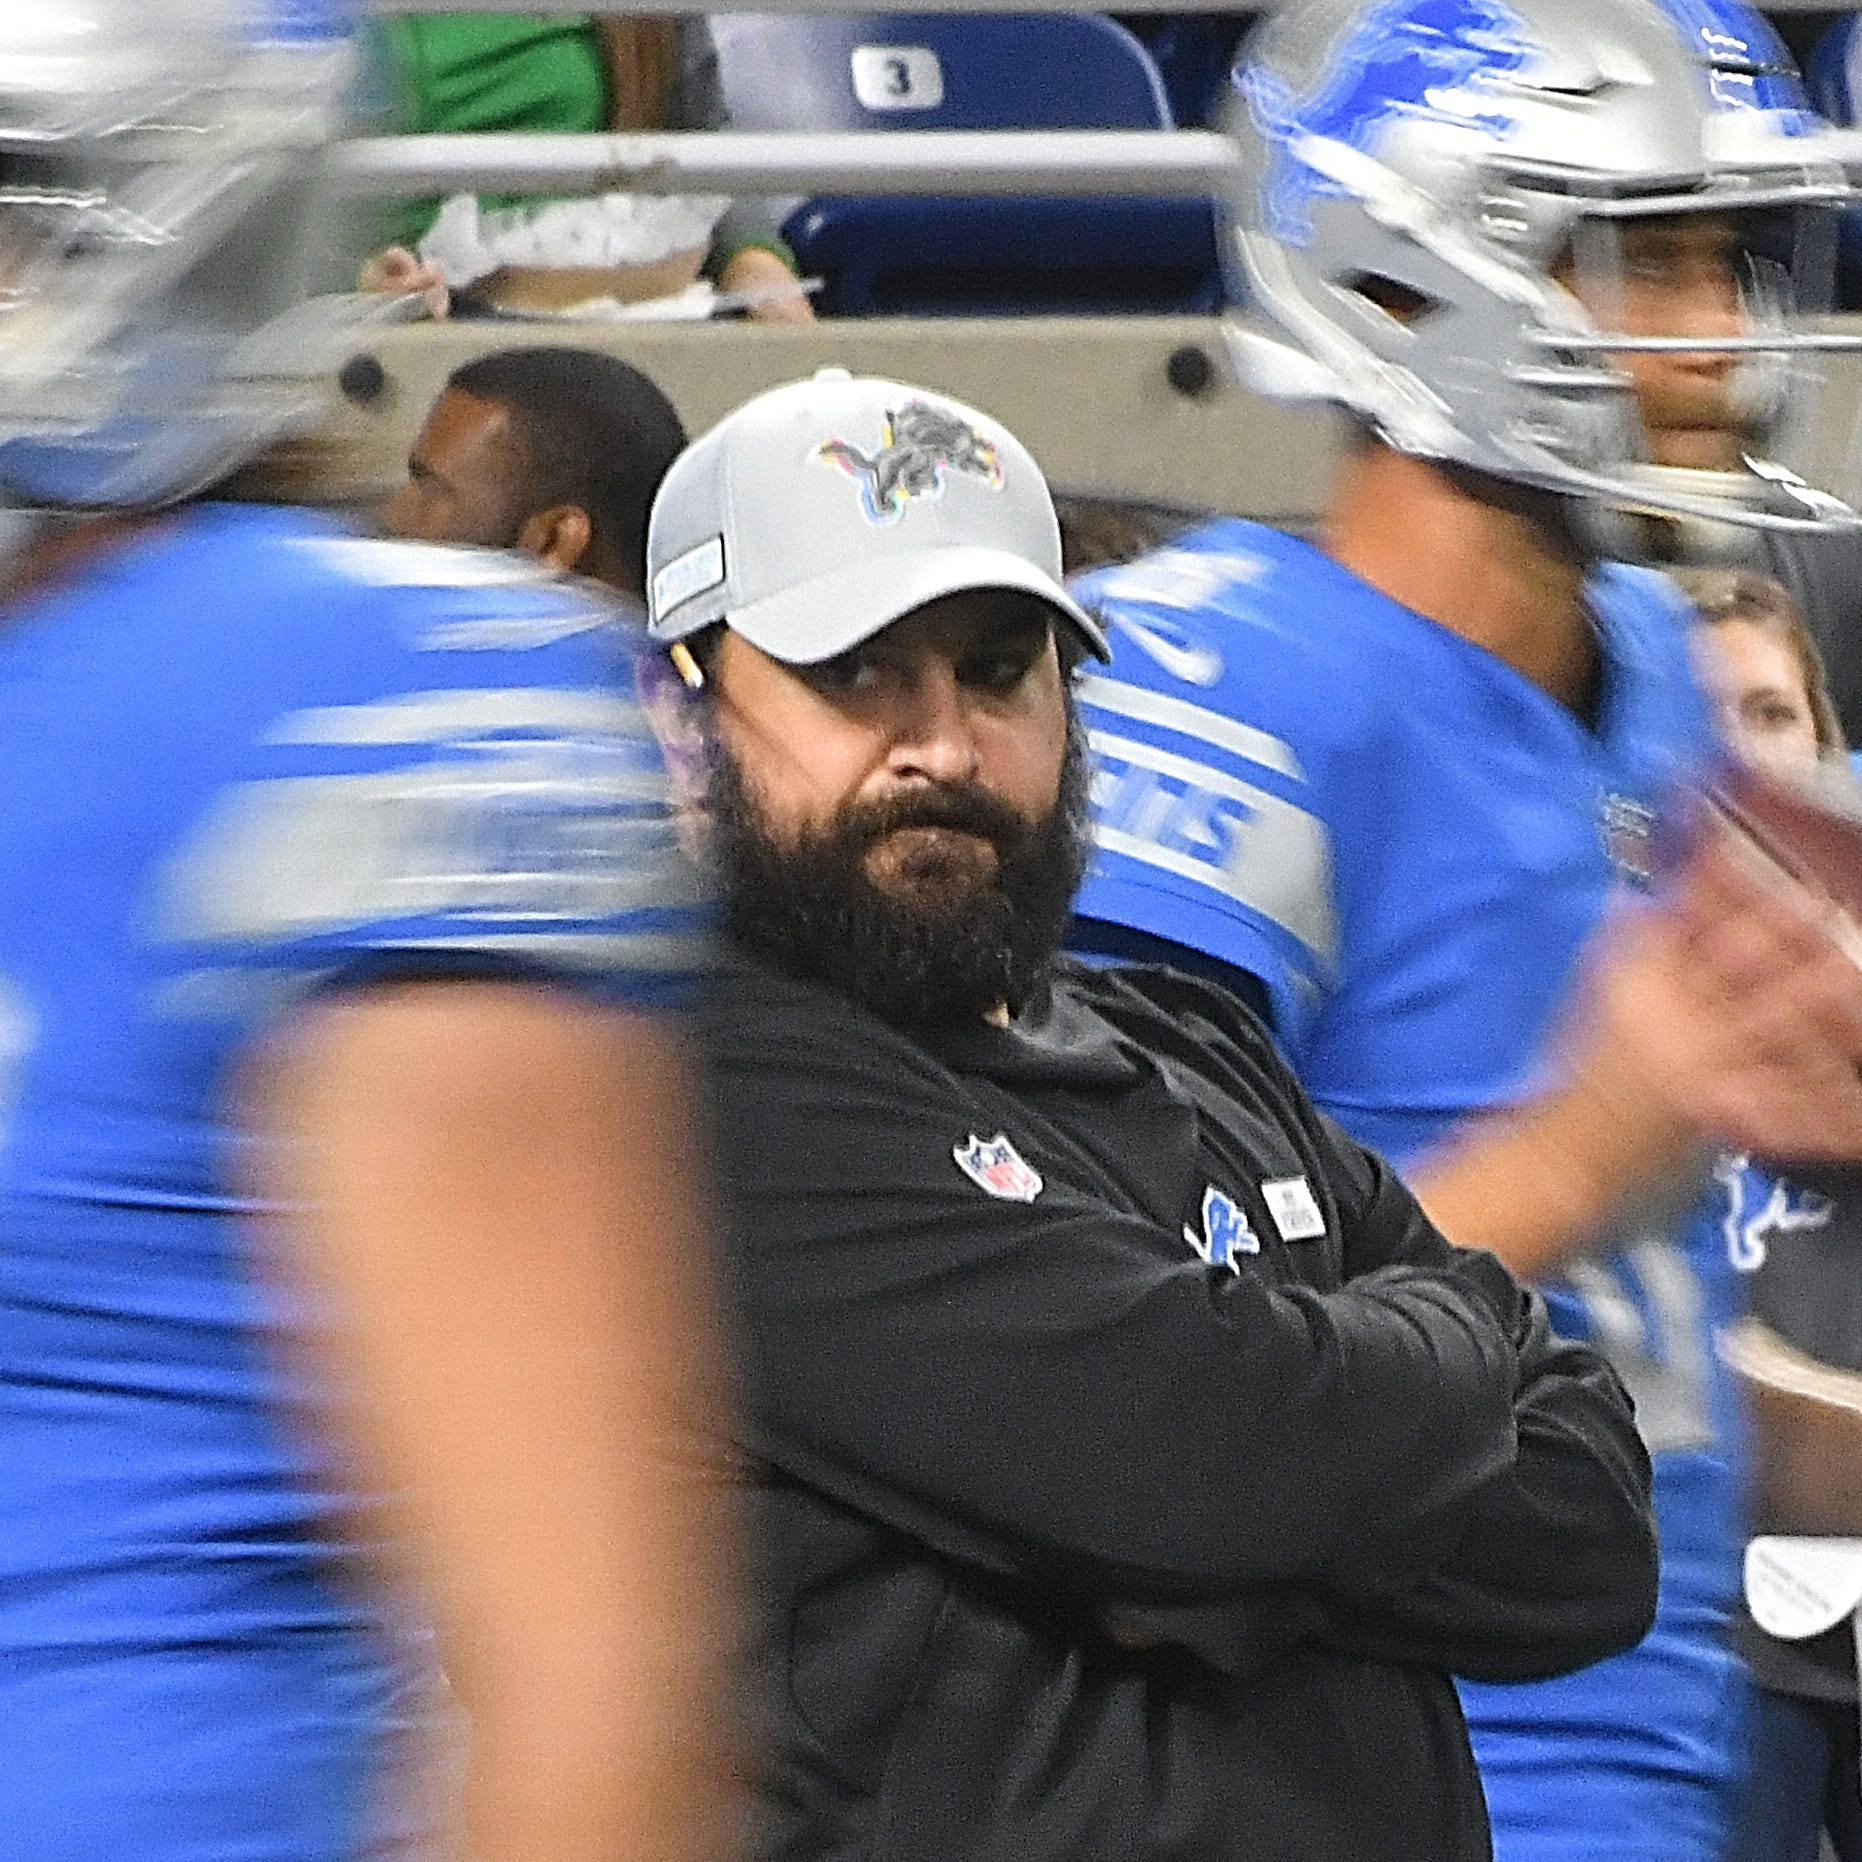 It's happened before: Thanksgiving win could give Lions playoff hopes